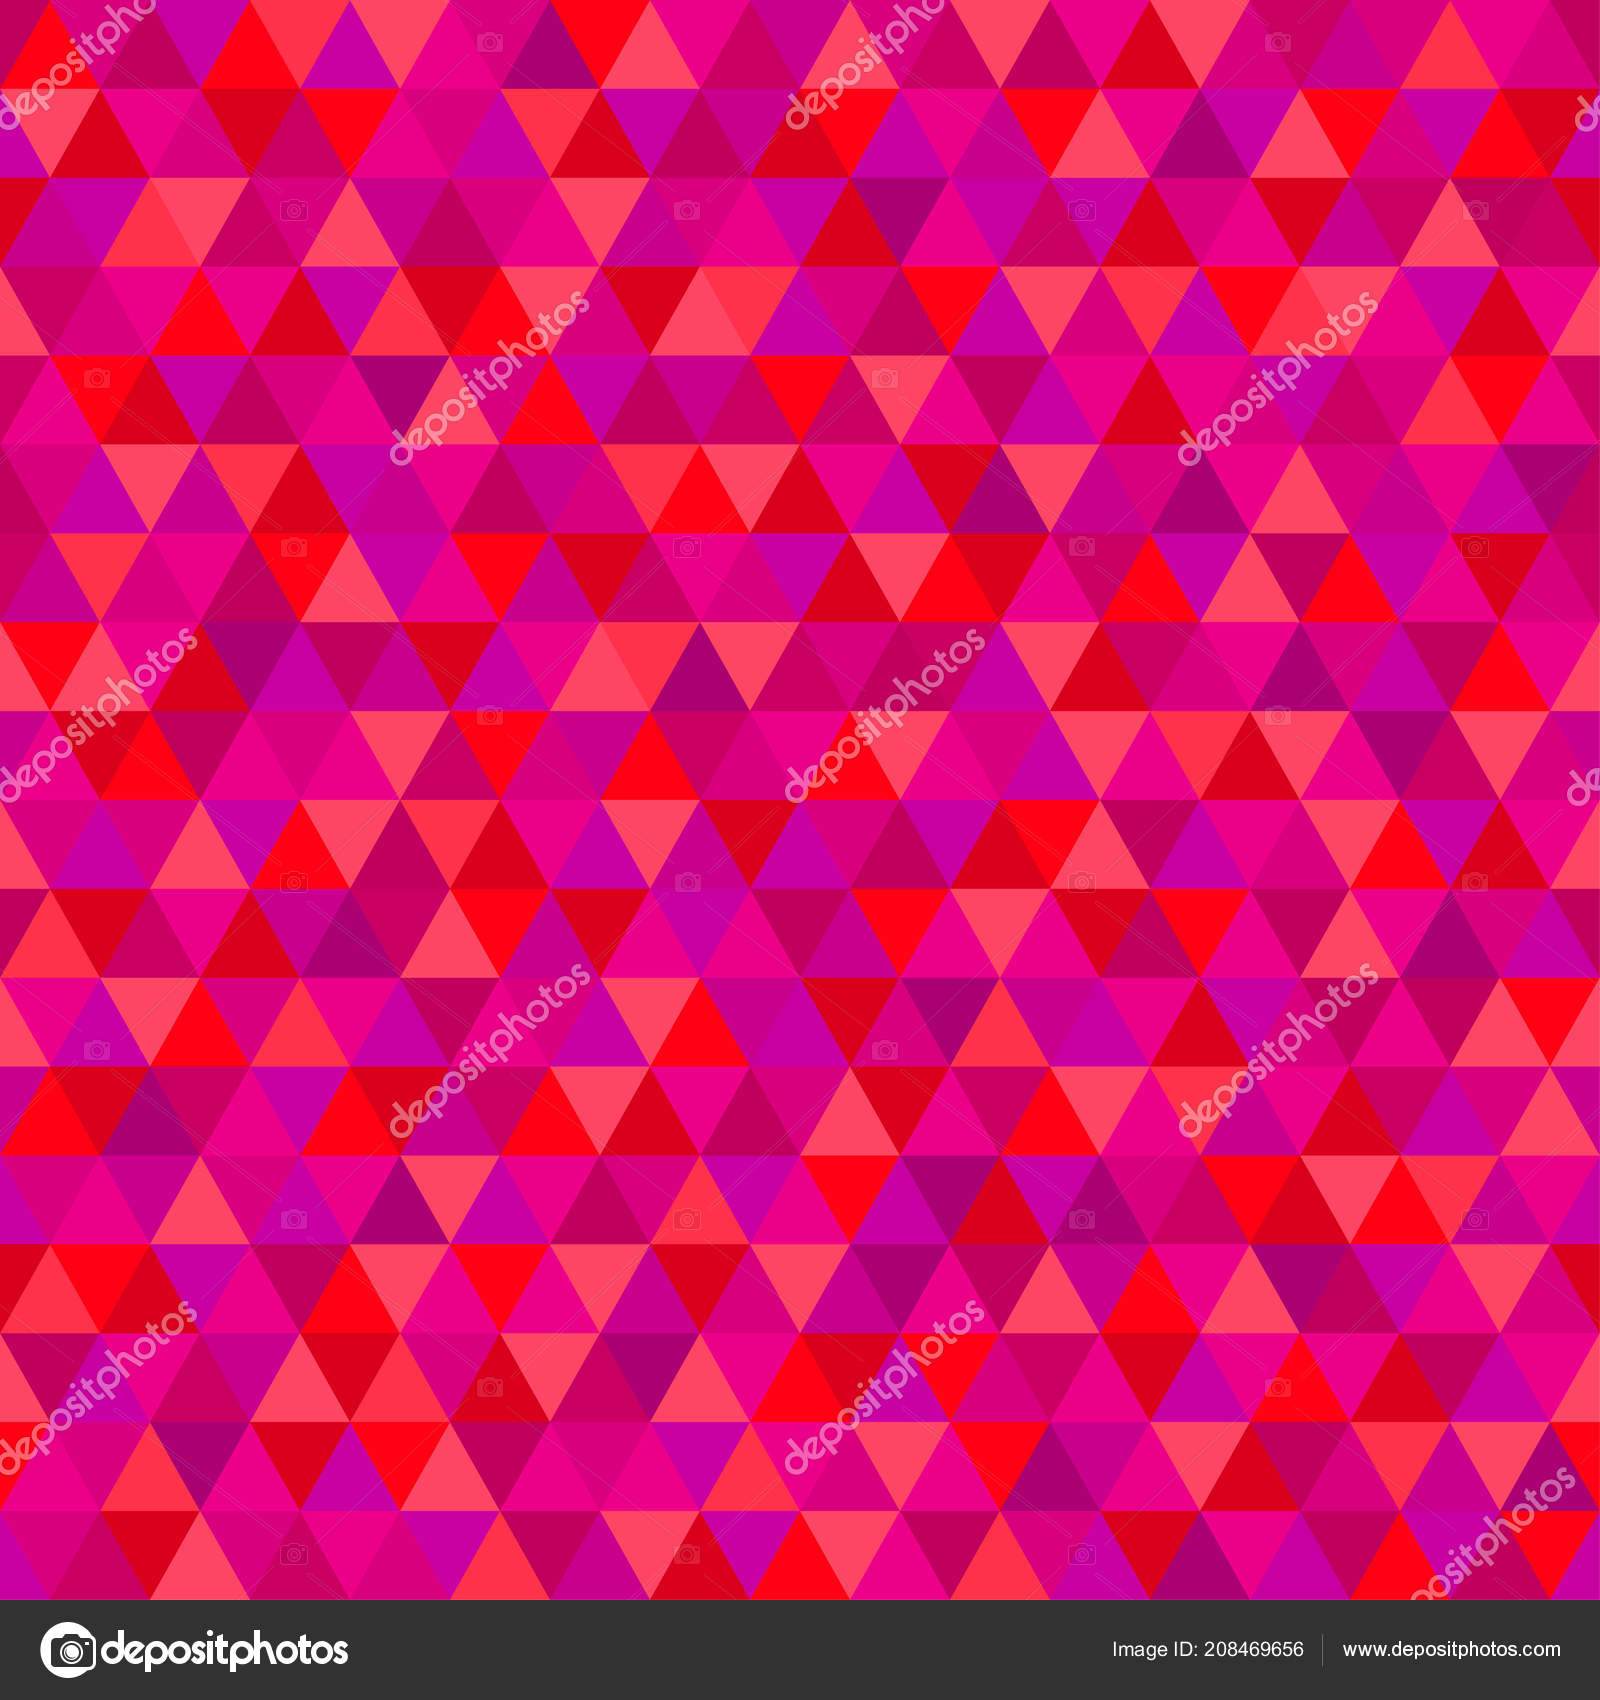 Wallpapers Cool Unique Seamless Triangle Pattern